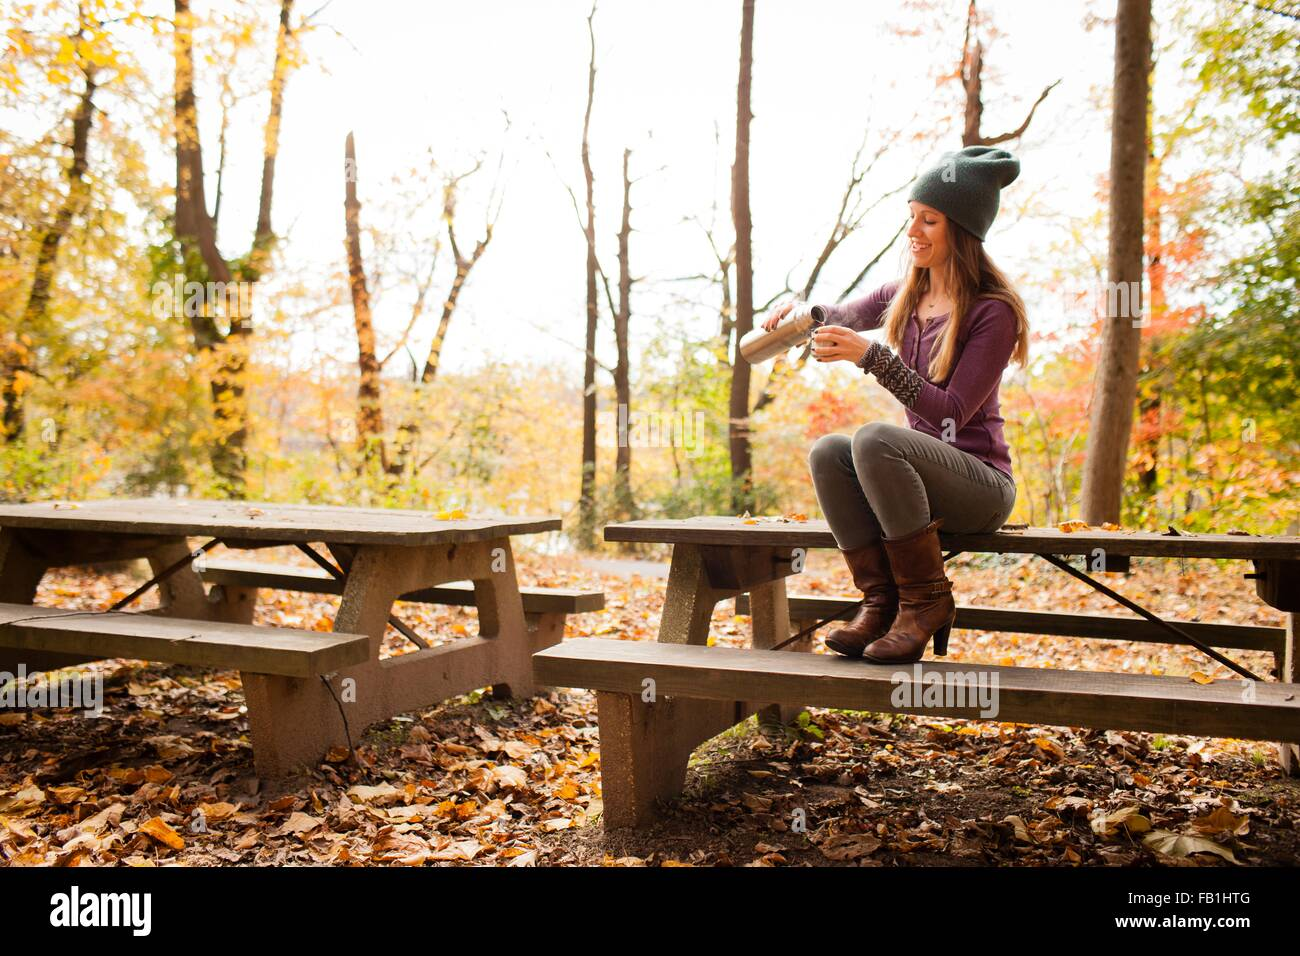 Young woman pouring drink on picnic bench in autumn forest - Stock Image